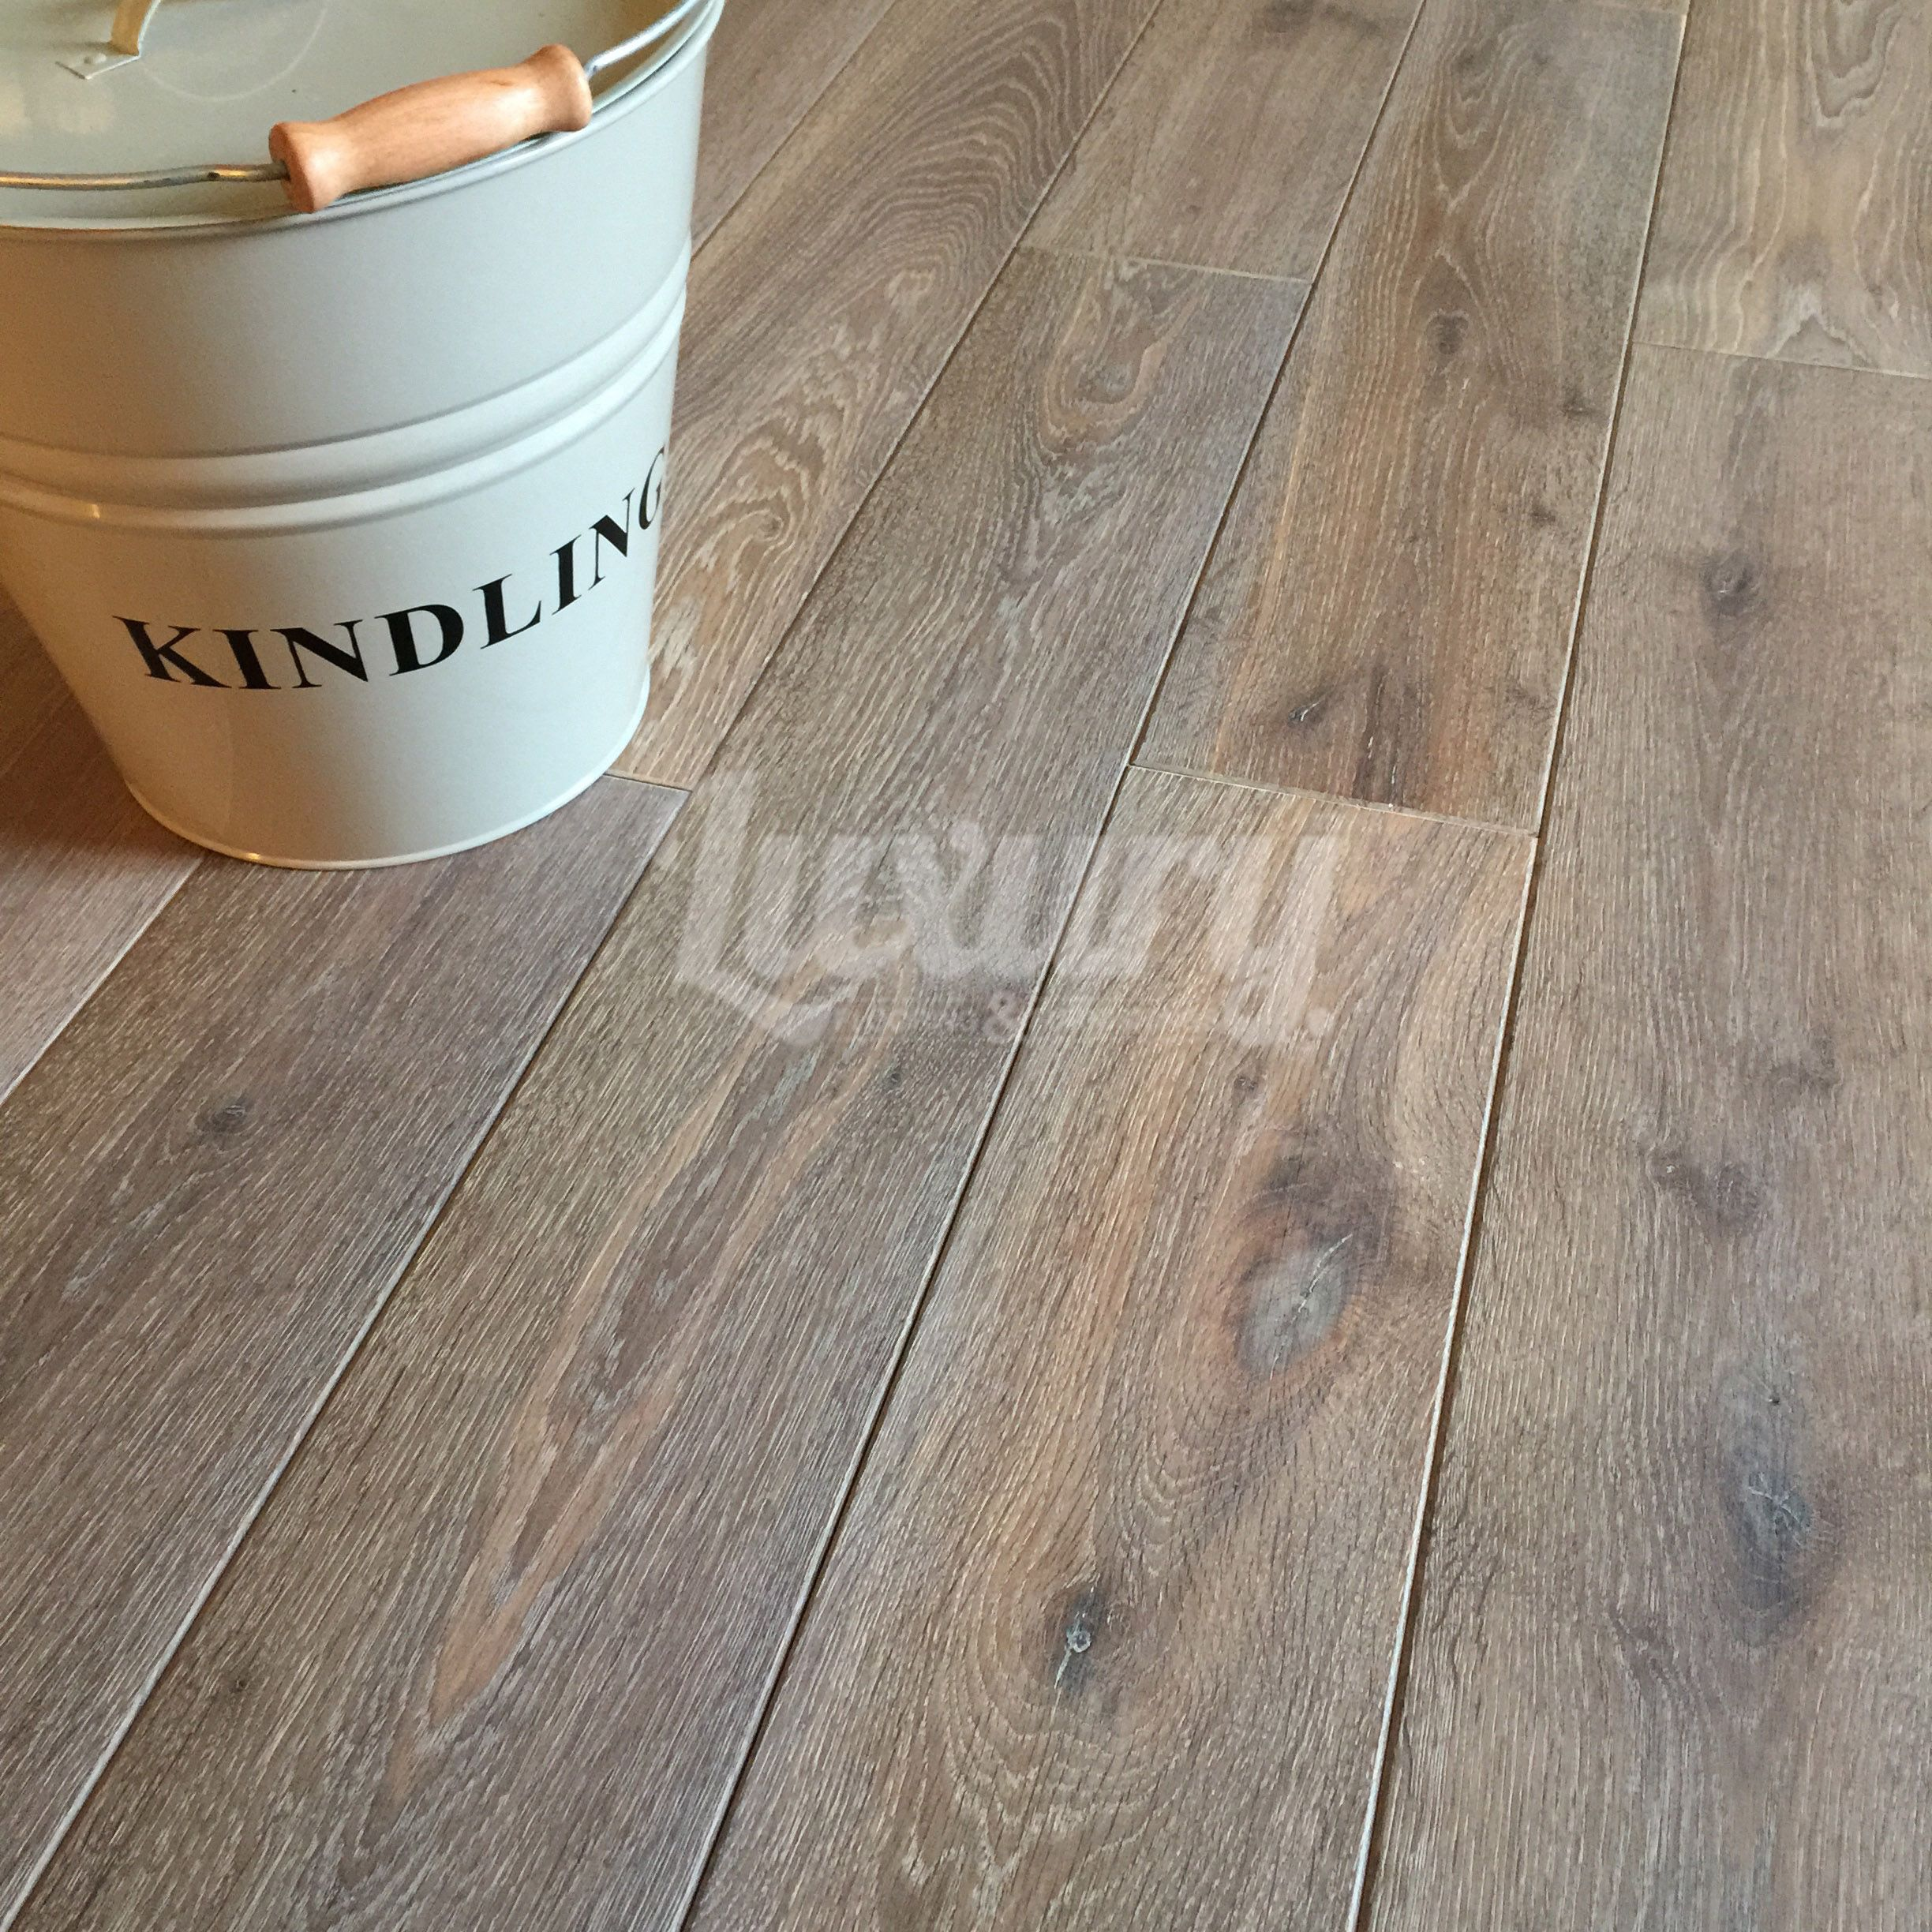 Luxury Flooring Introduce a Brand New Range of 20mm Solid